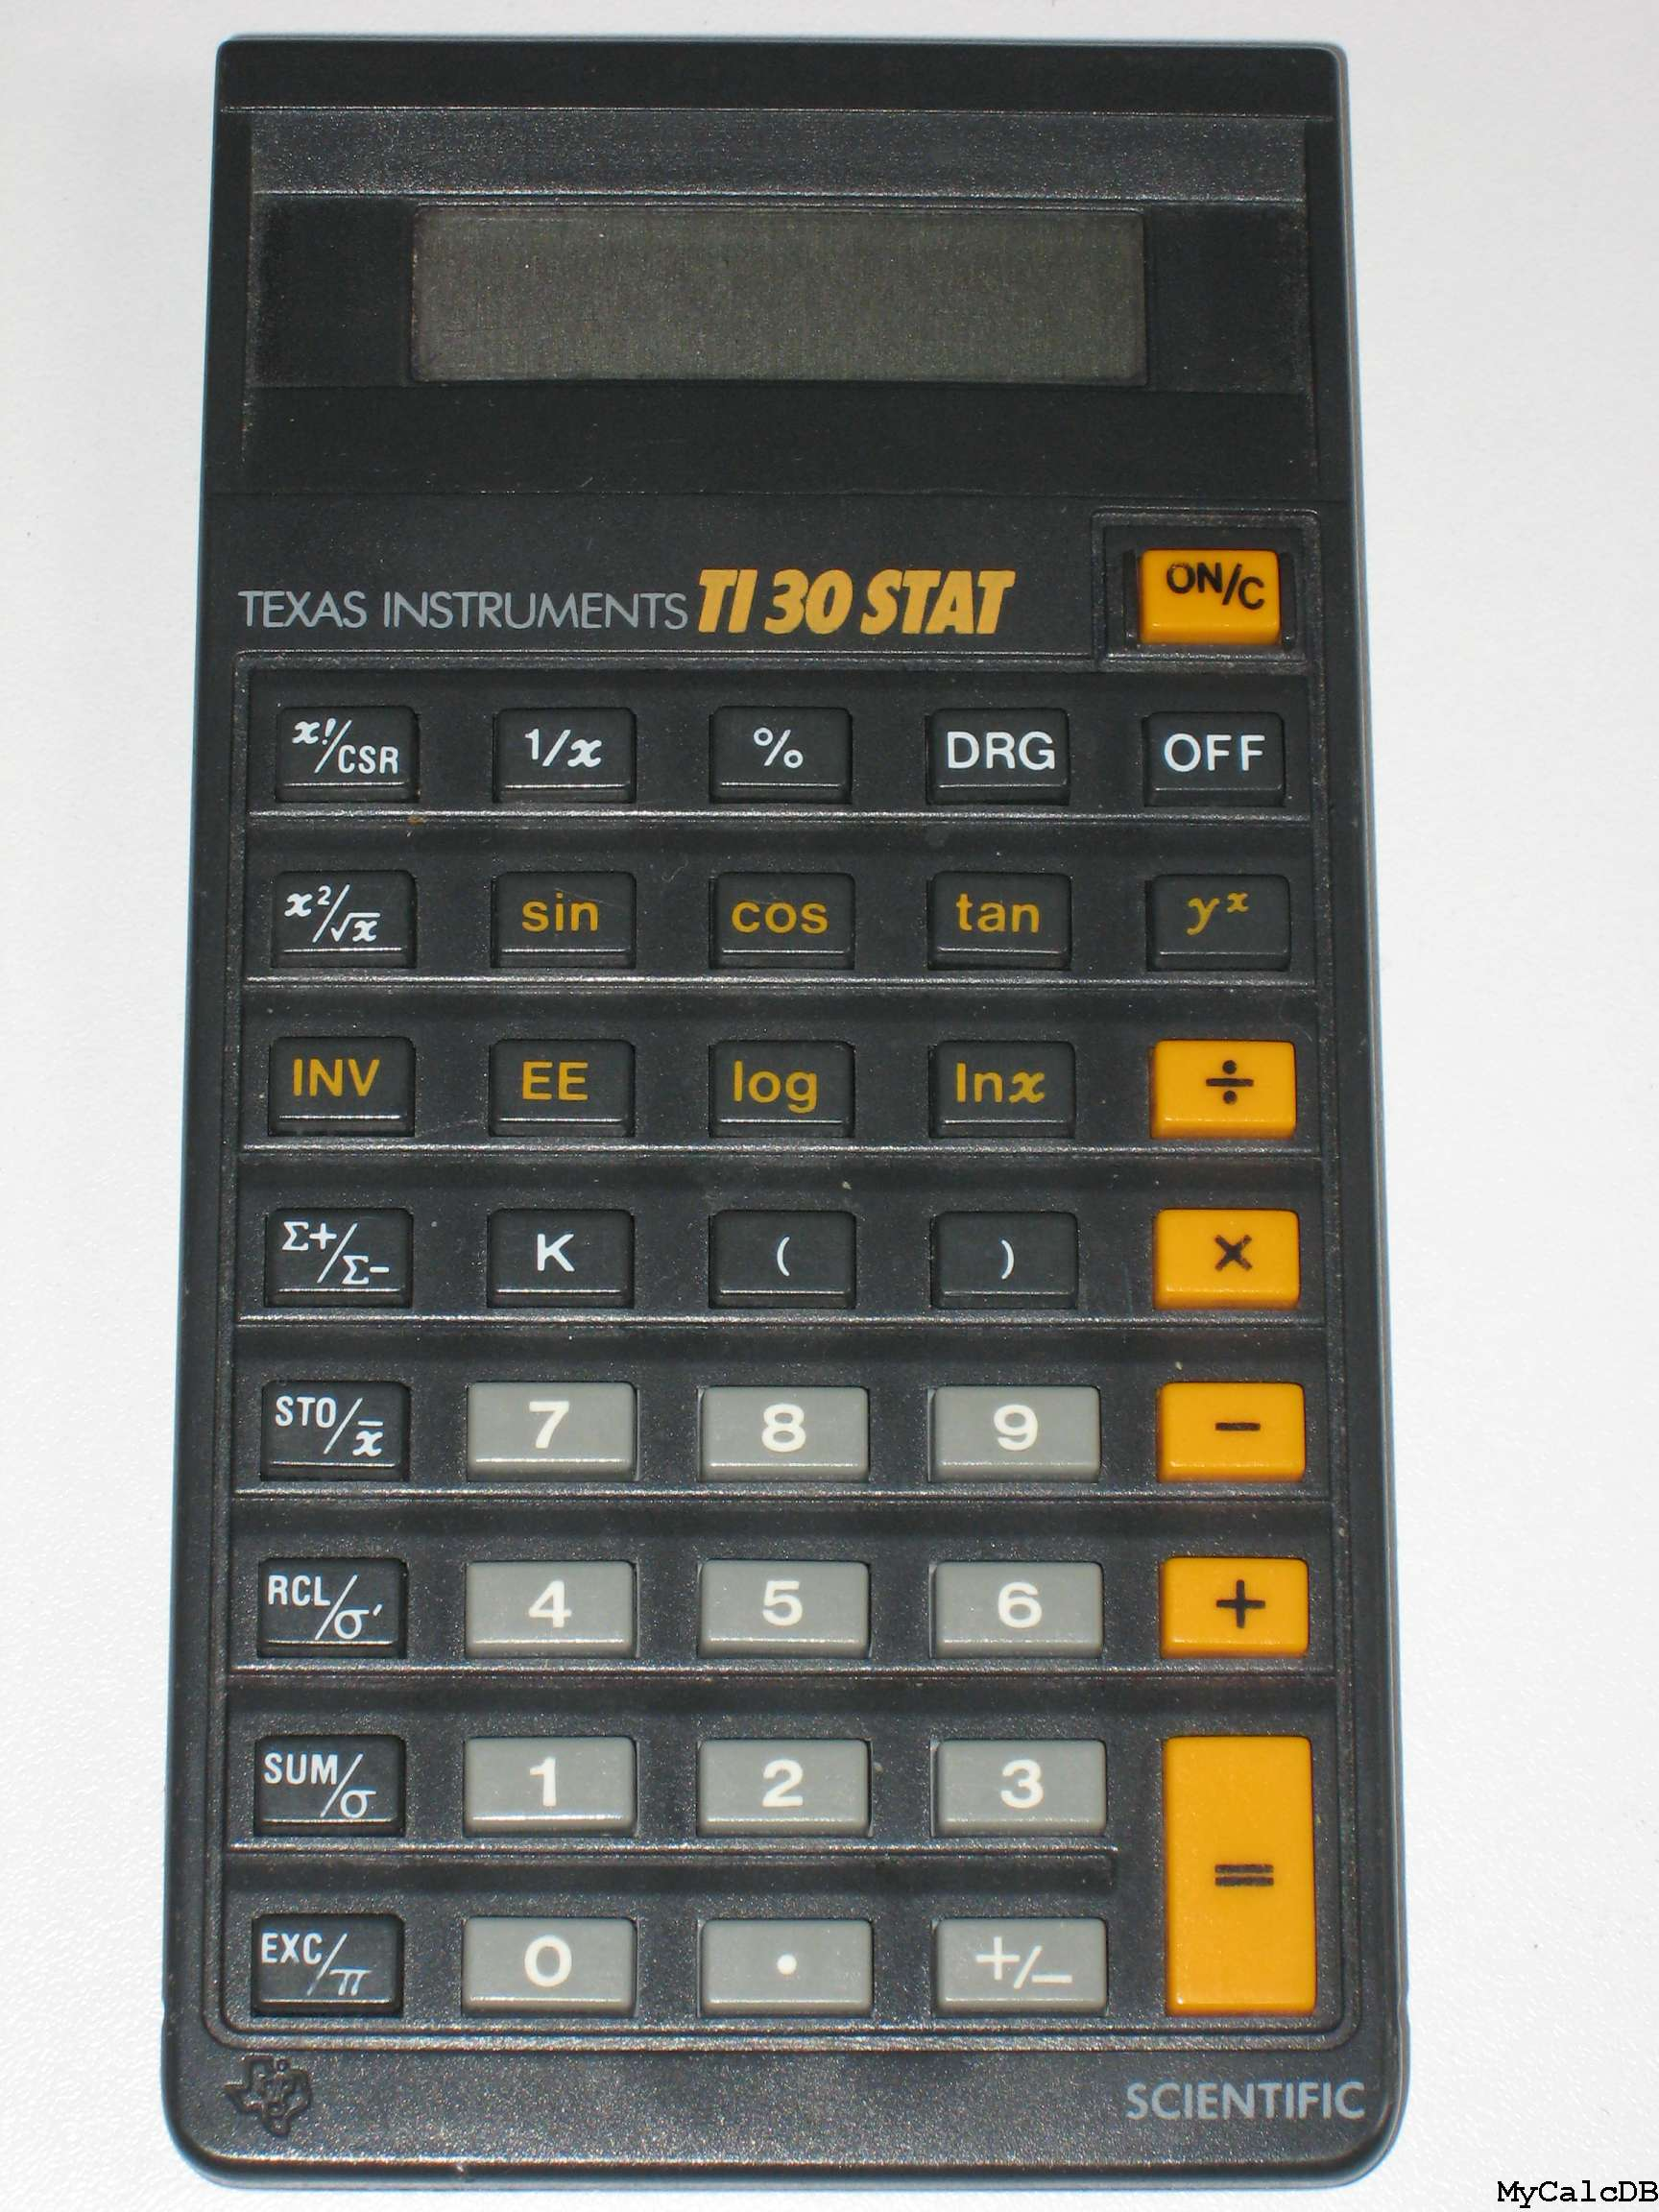 Texas Instruments TI 30 STAT